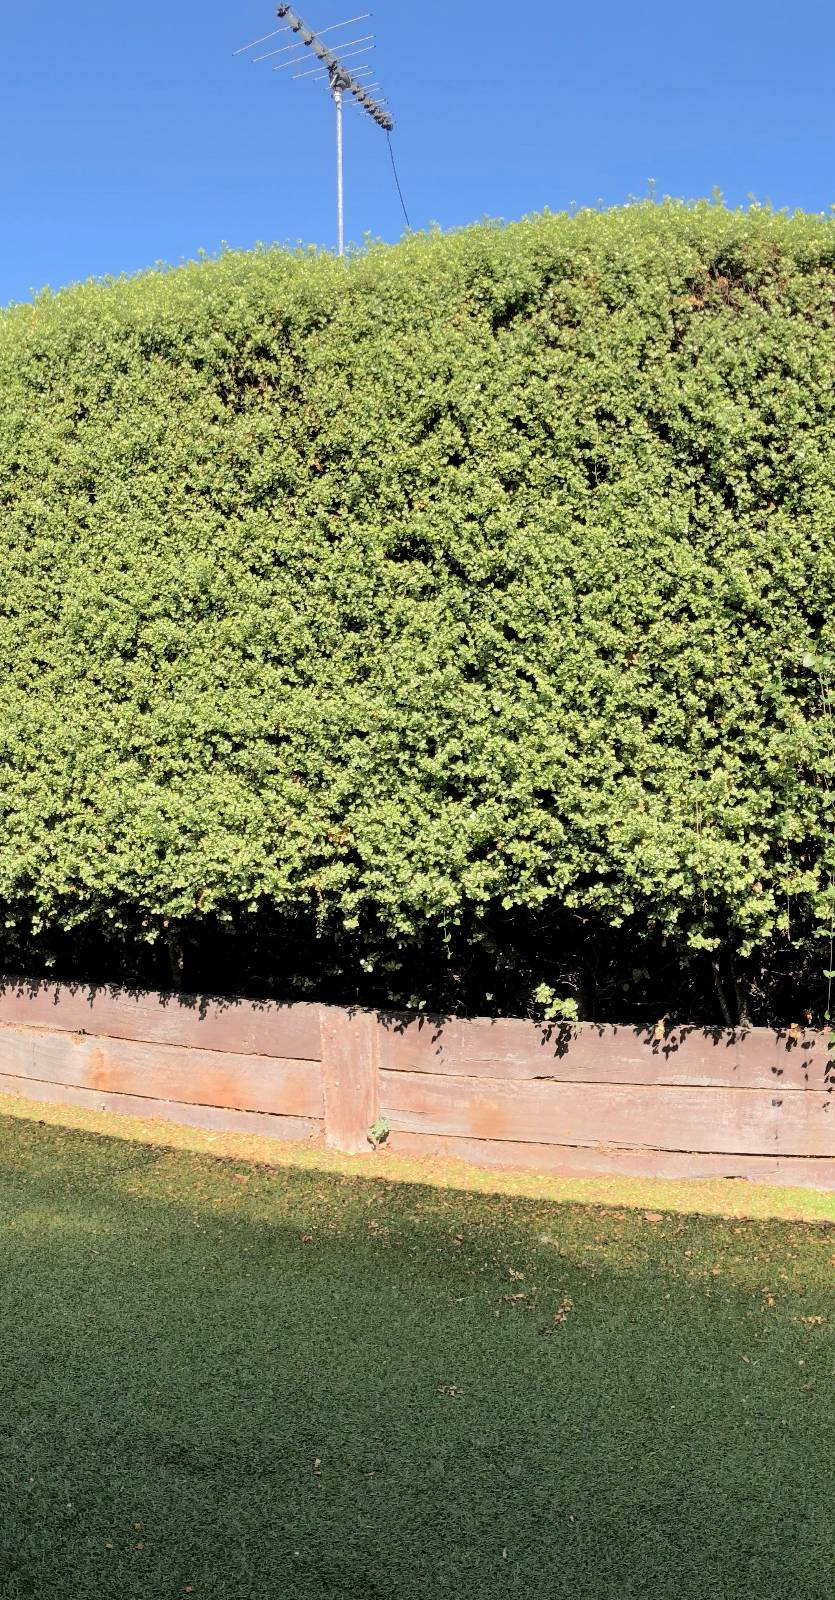 Pittosporum hedge - can we sell or just cut it down?